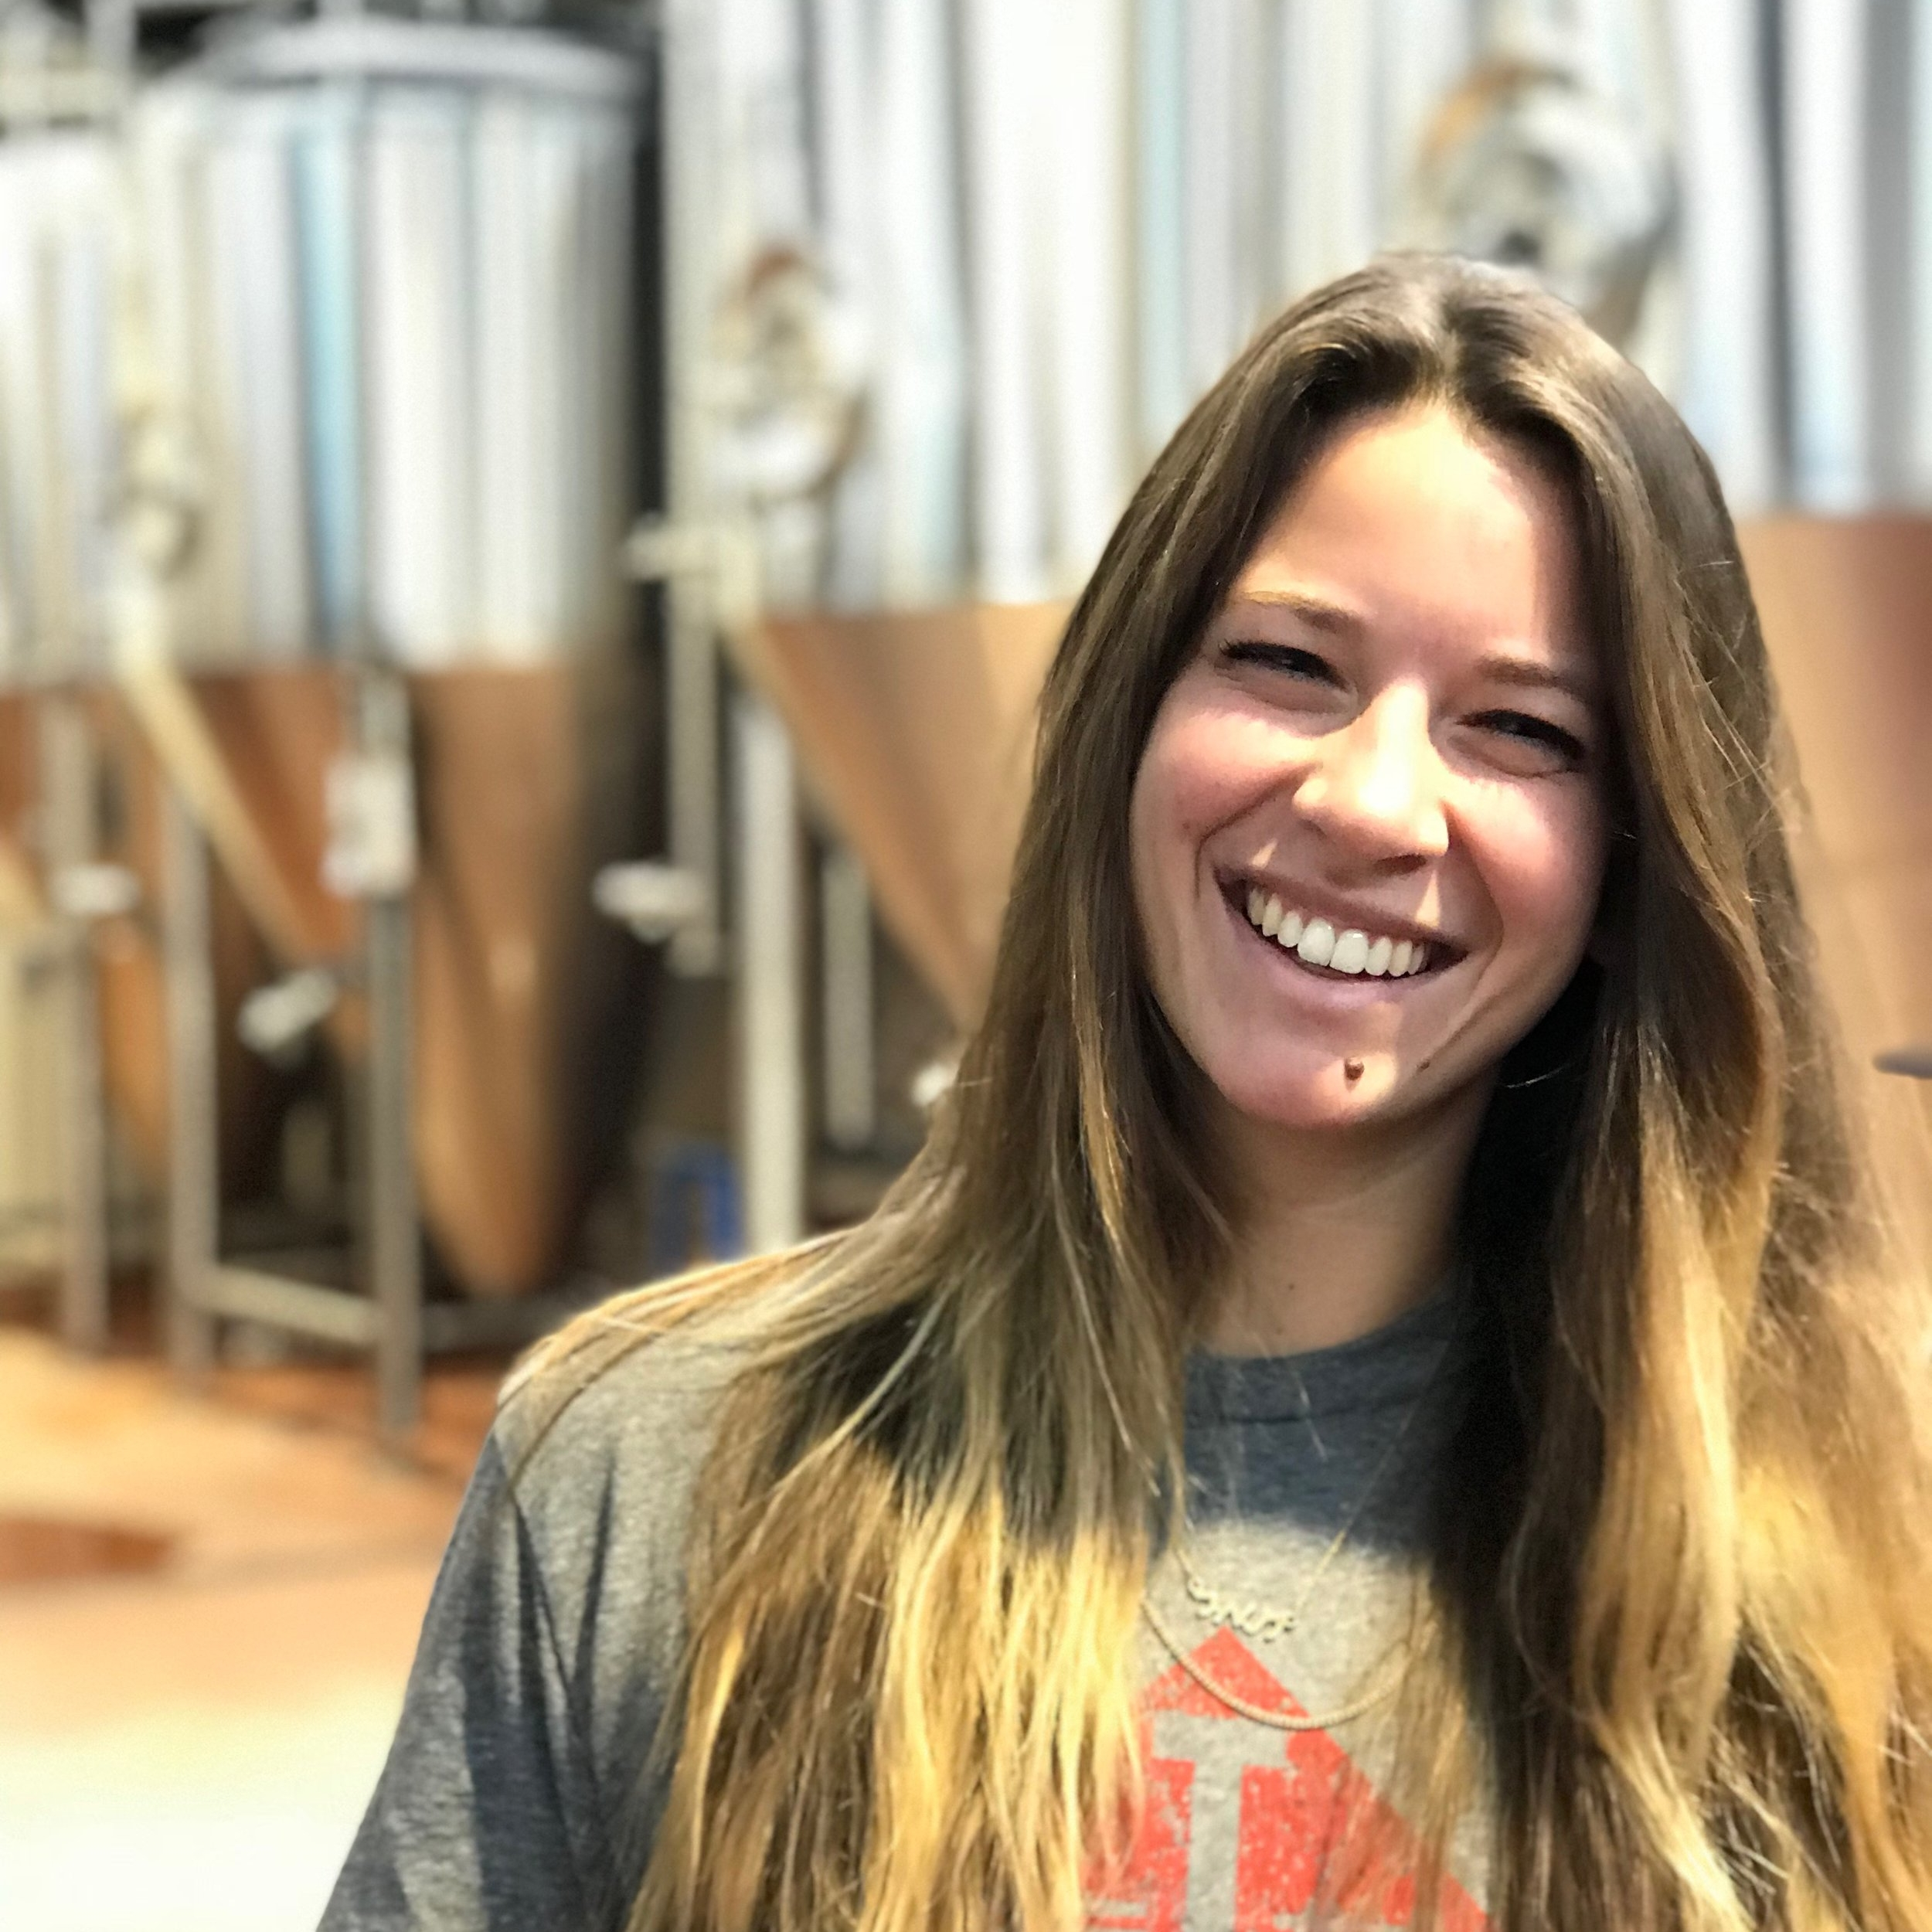 Tamar, Tap Room/Brewery/Events  While she may be a veteran world traveller, Tamar always has her heart in her hometown of Evanston. Tamar's smile is infectious, but her eye-rolling skills are crazy impressive.